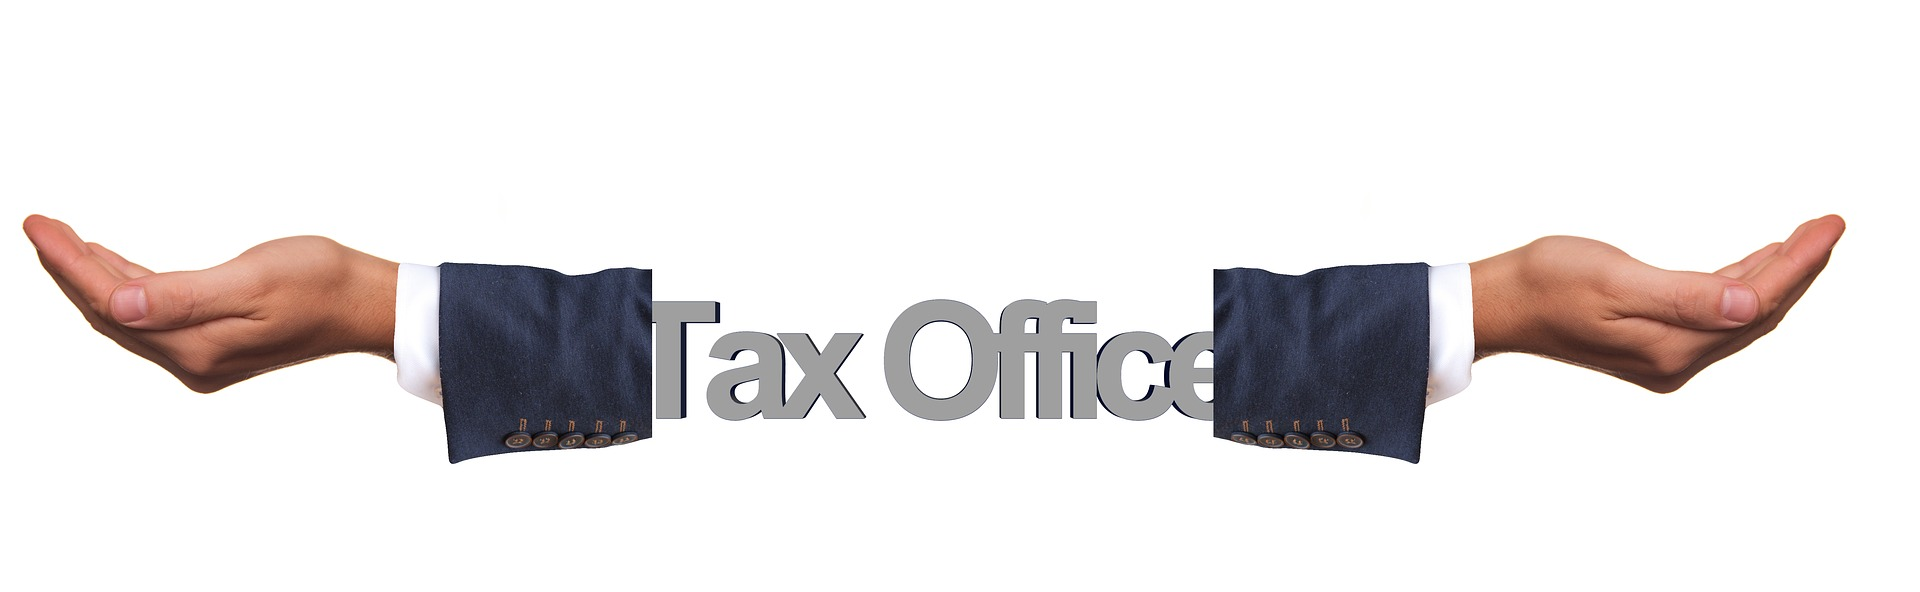 tax-office-2668214_1920